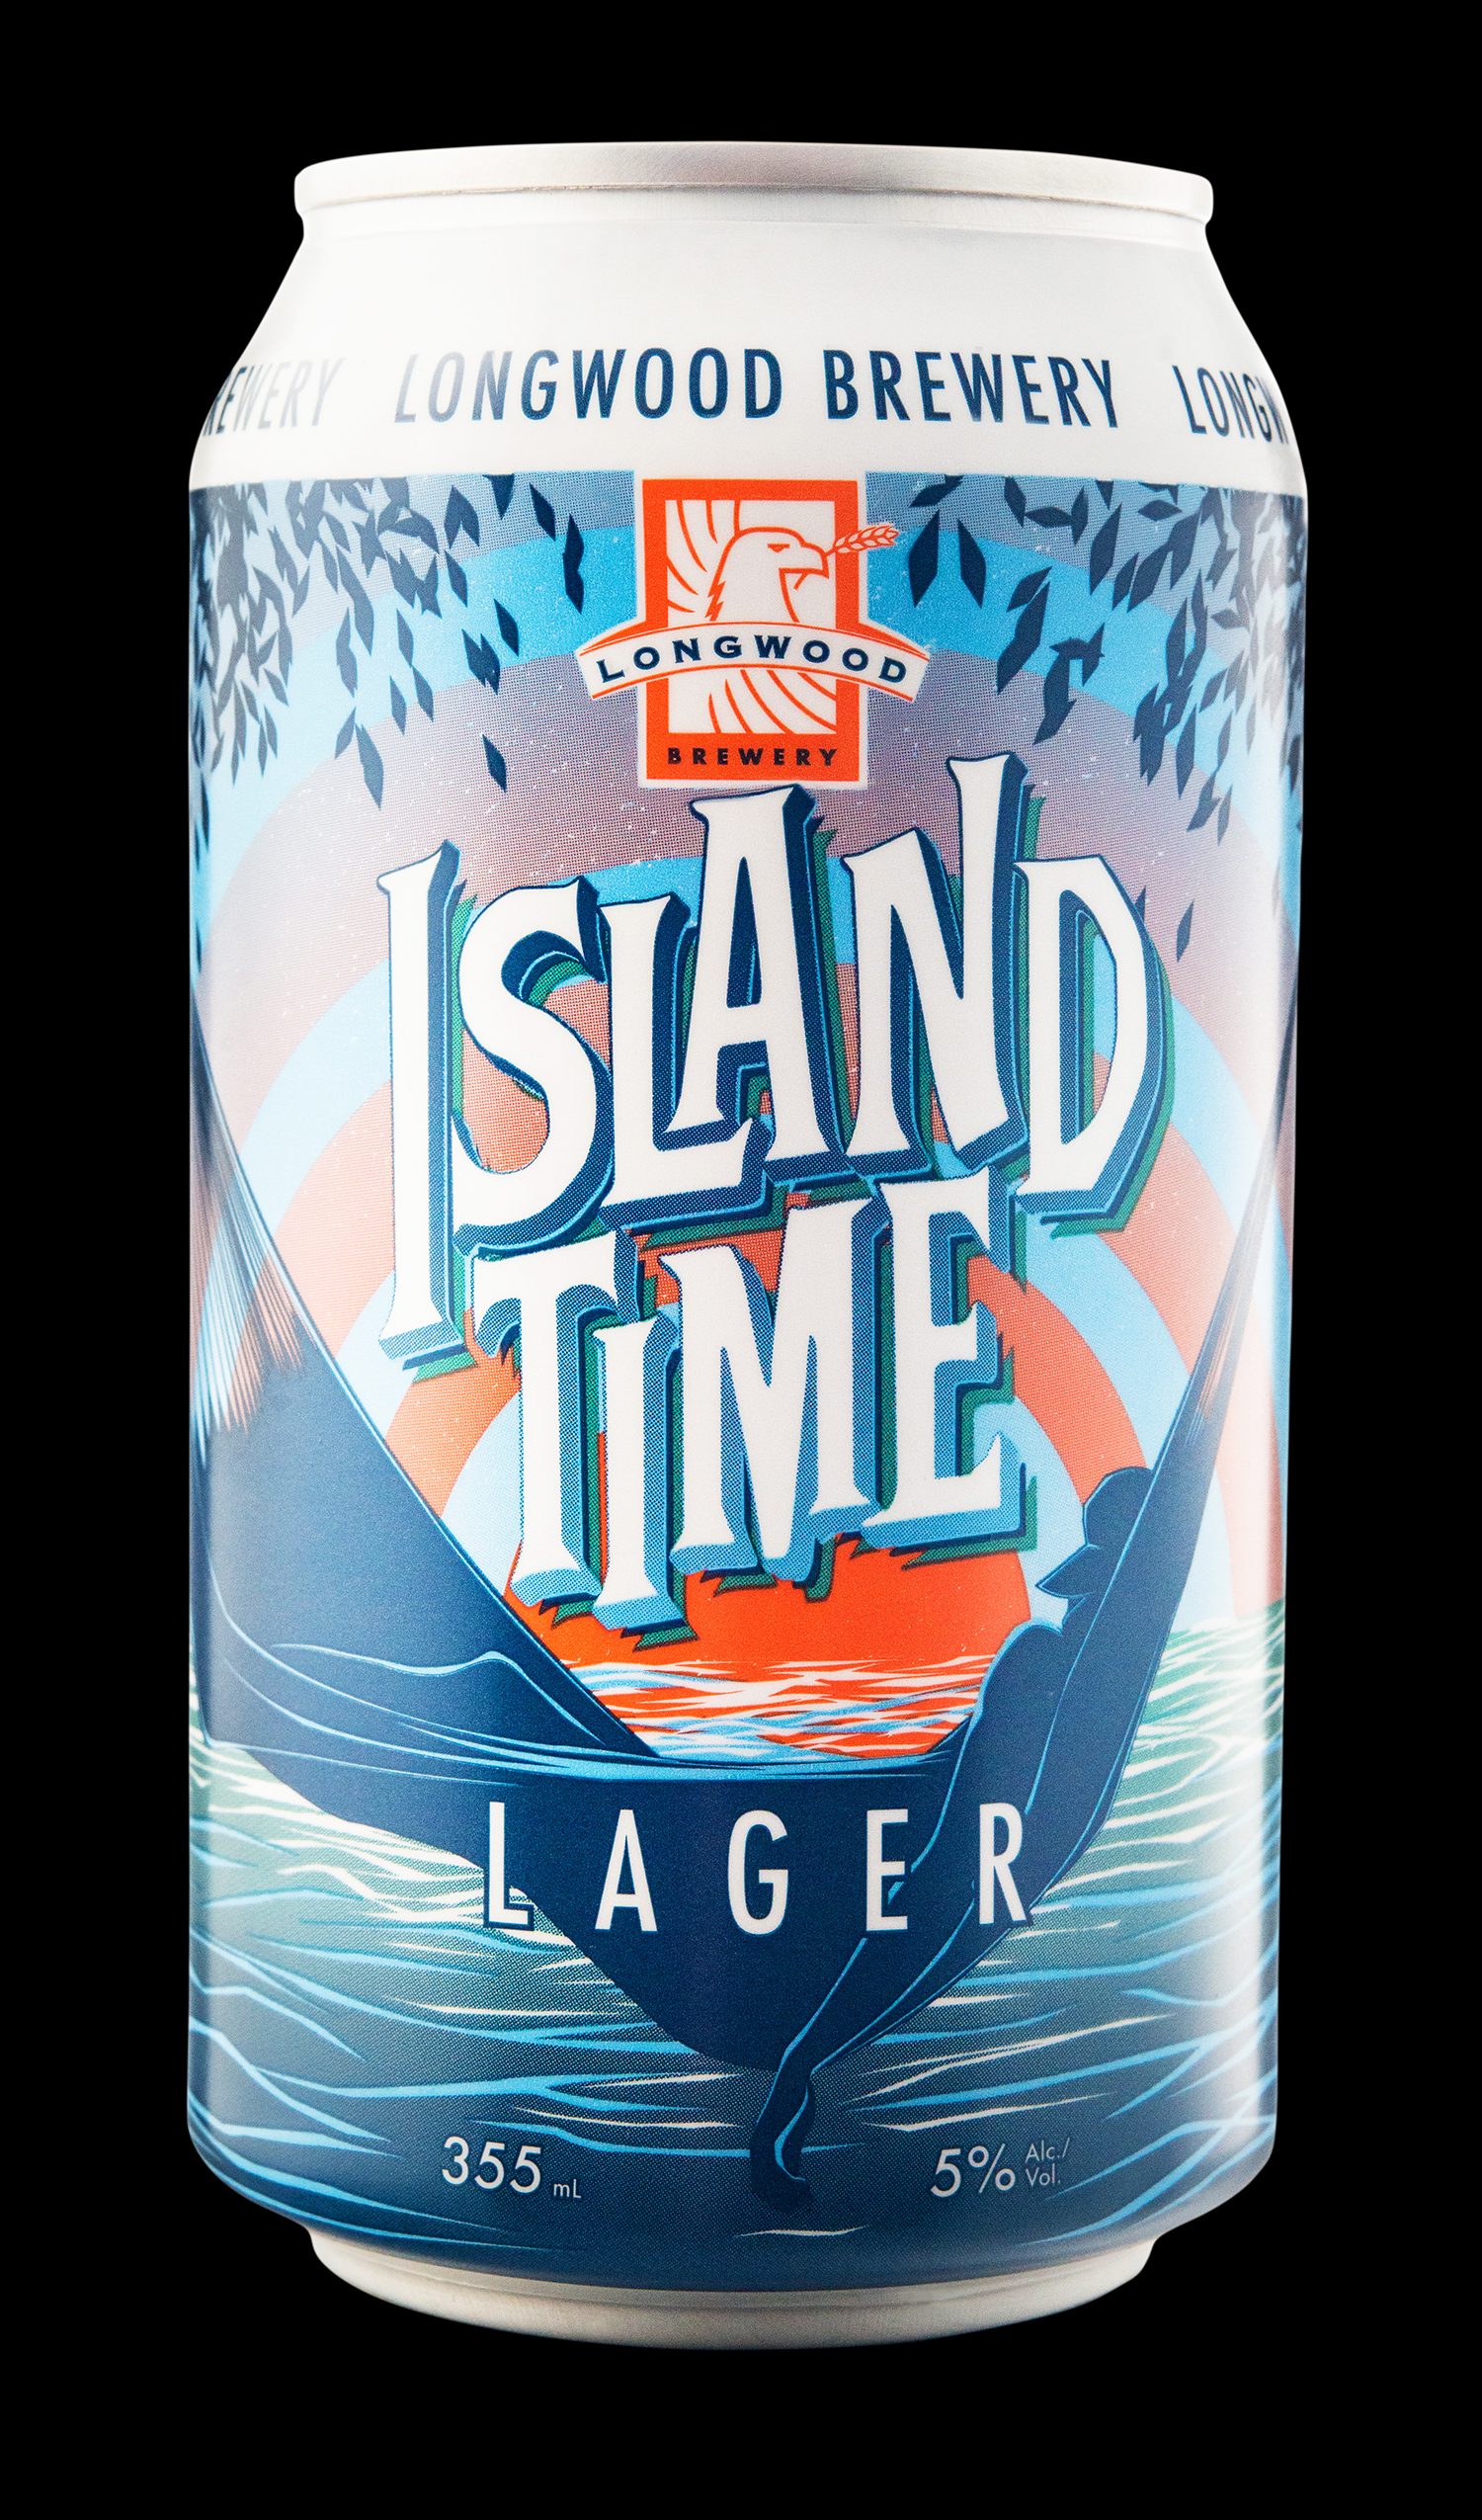 Package Design for Longwood Brewery Island Time Lager